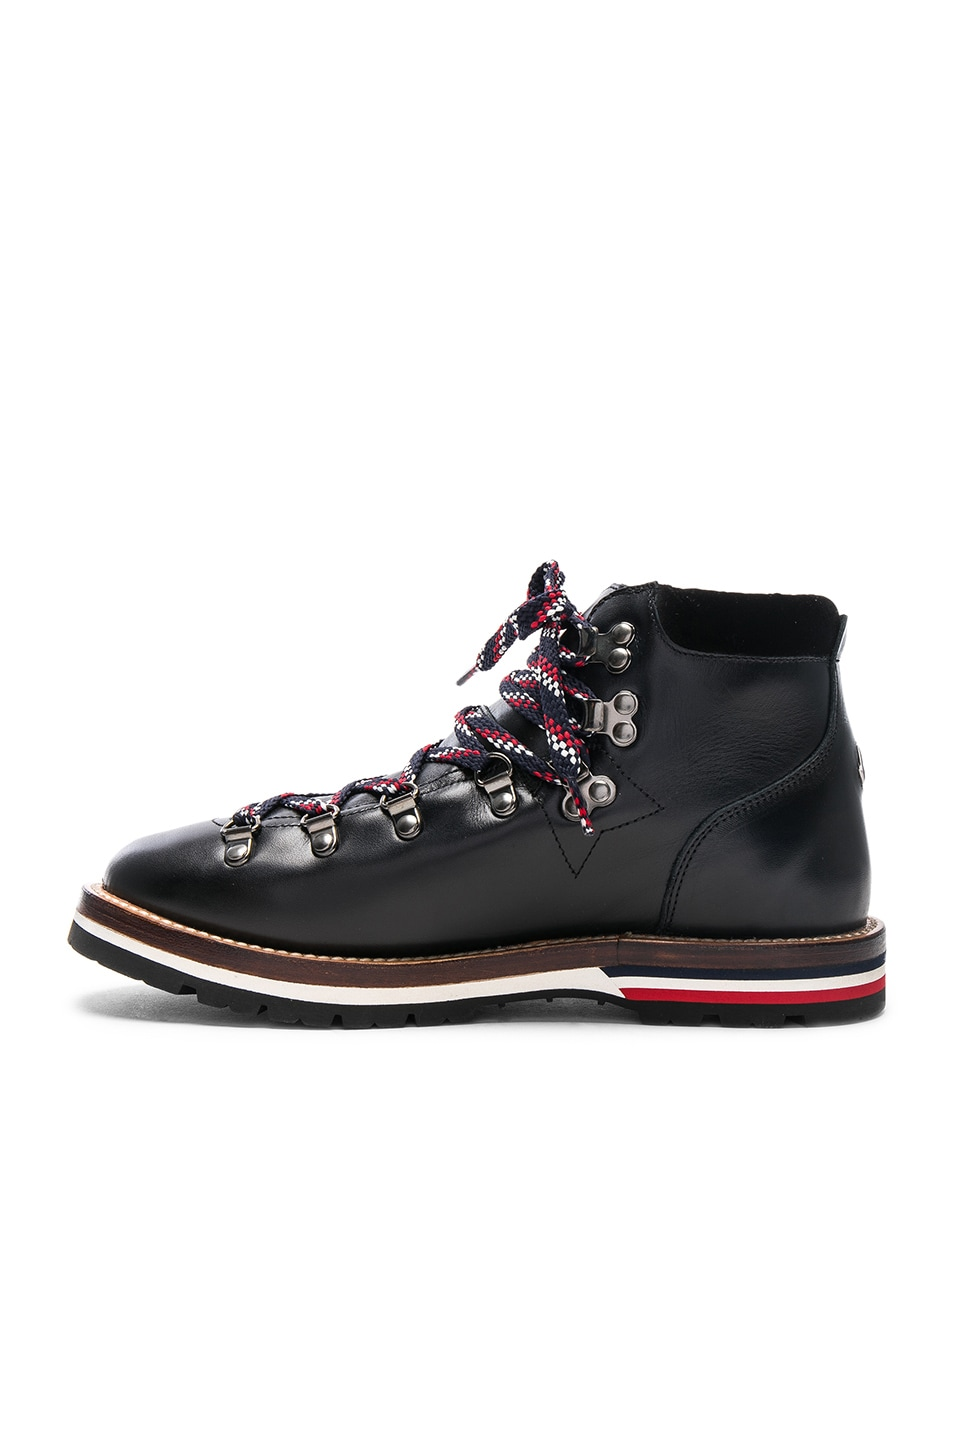 Image 5 of Moncler Leather Blanche Boots in Black